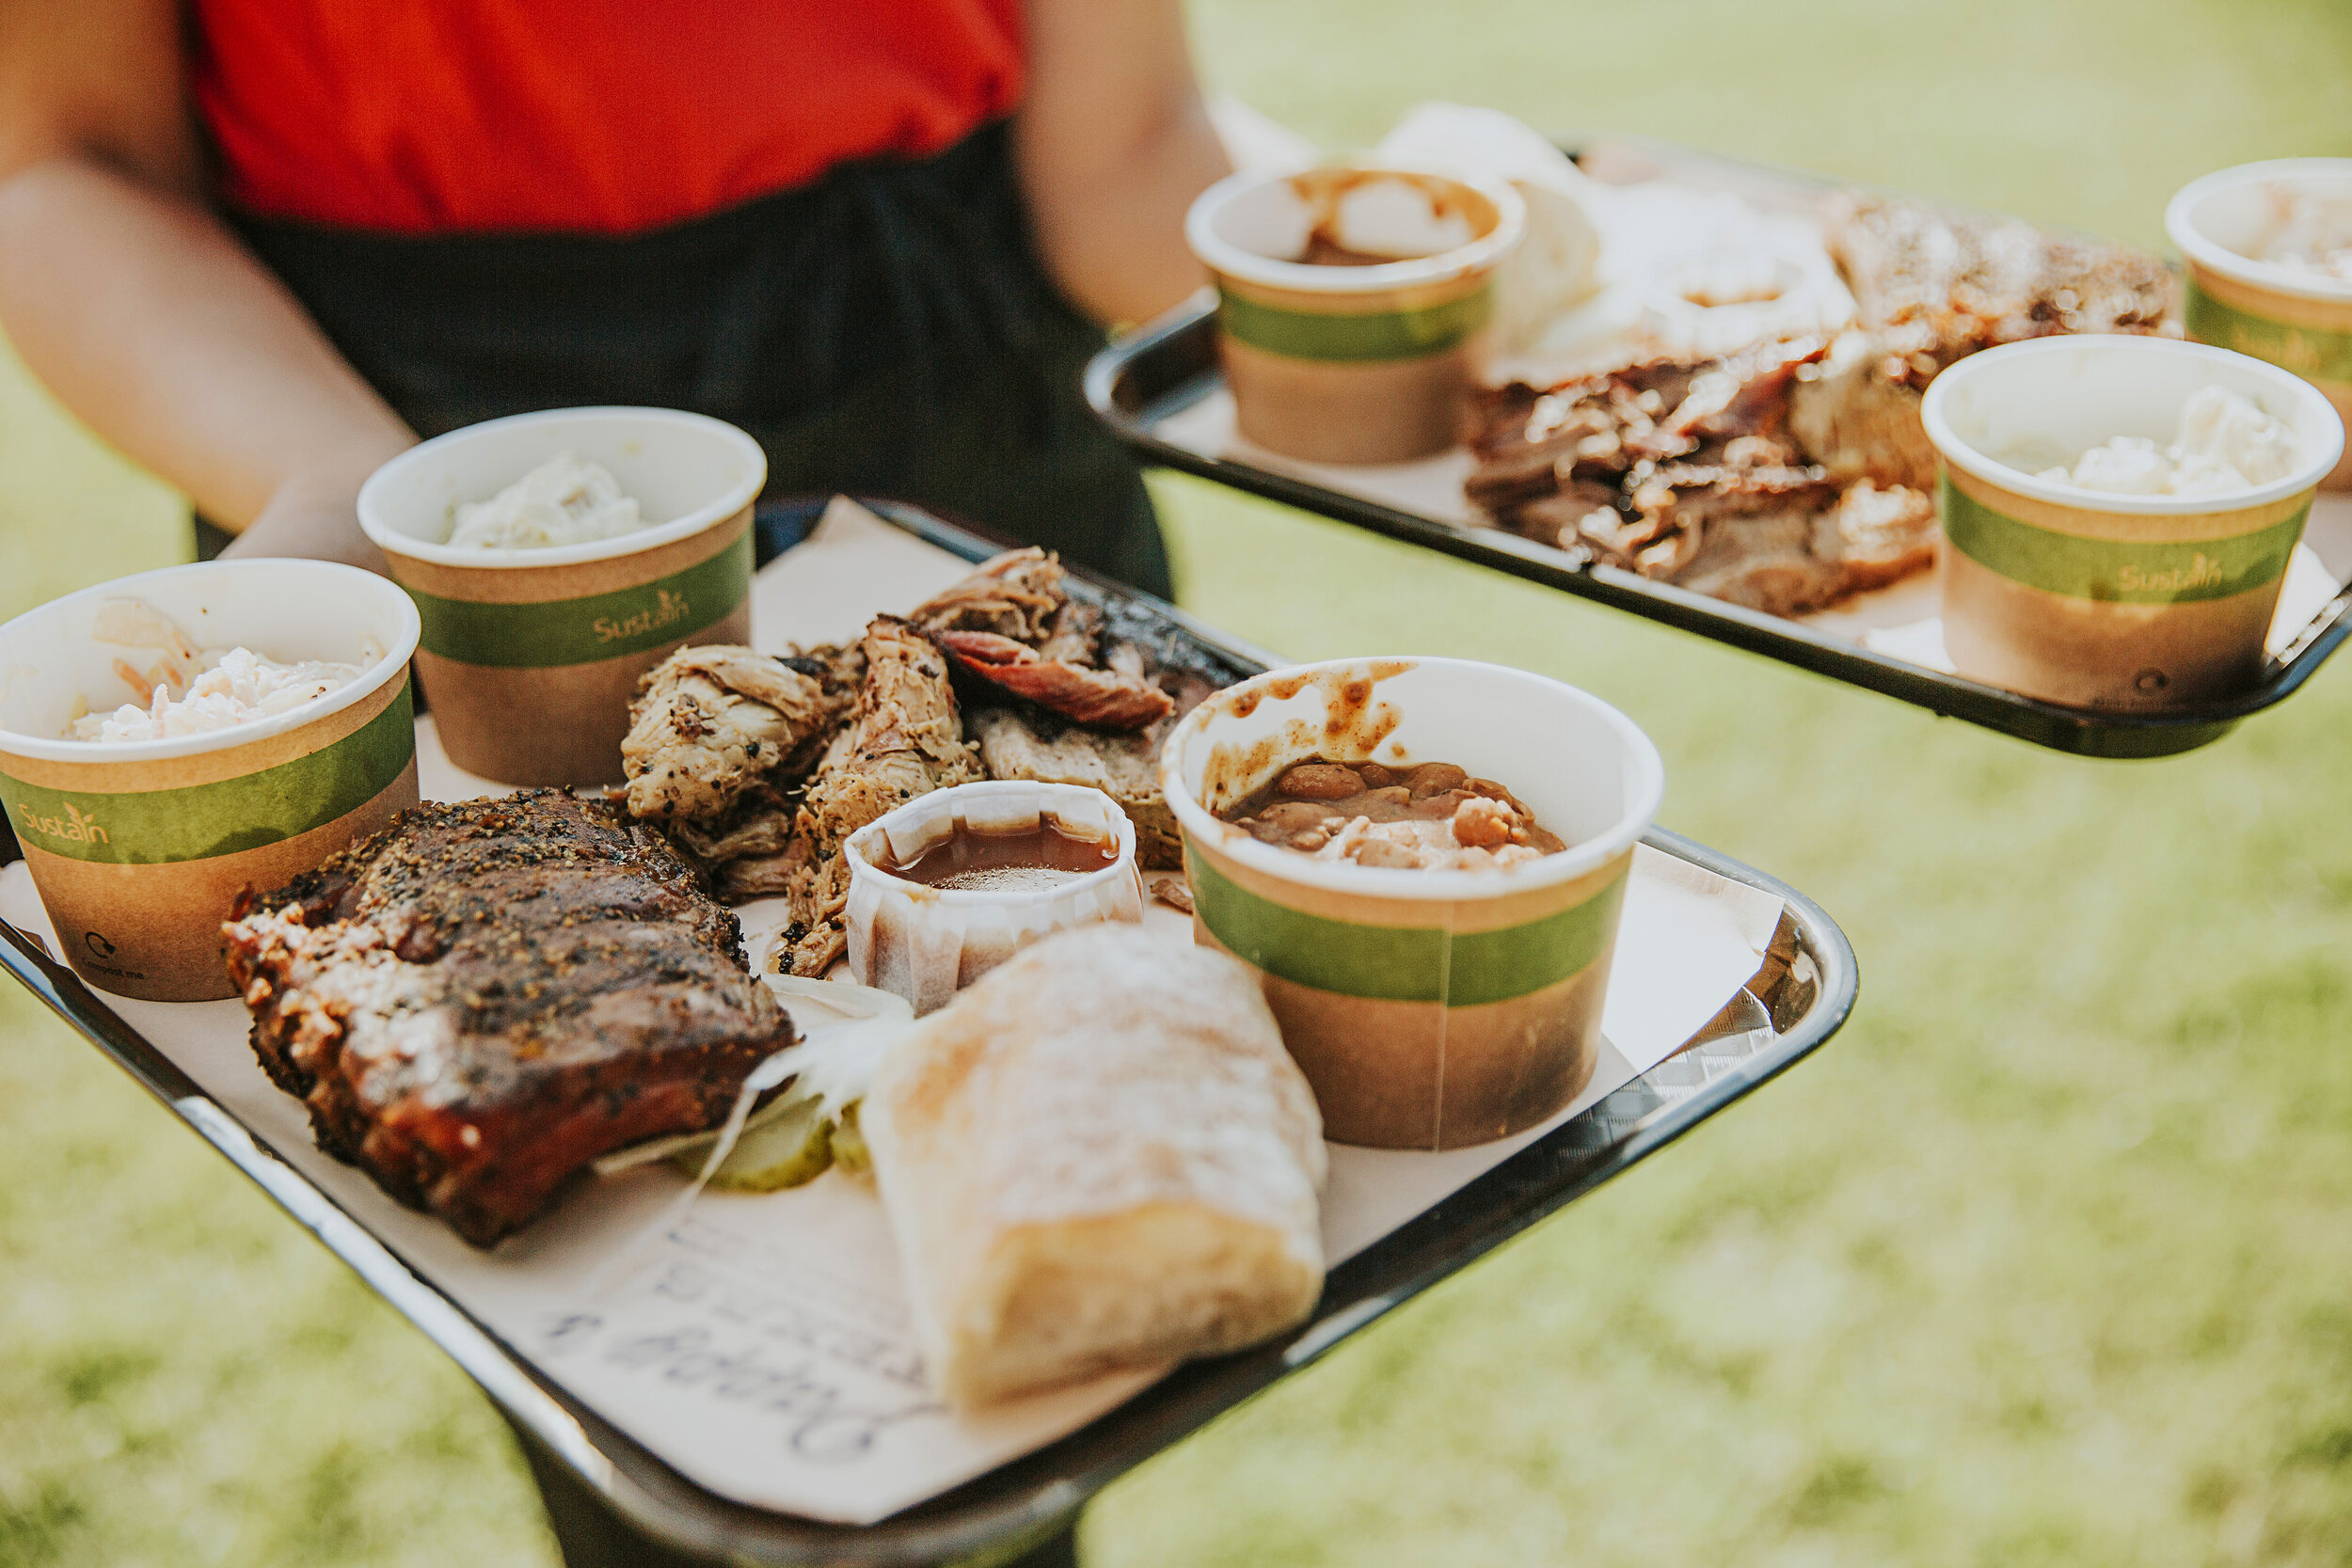 Our 3 meats, 3 sides platters ~  image courtesy of Penny Rose Photography